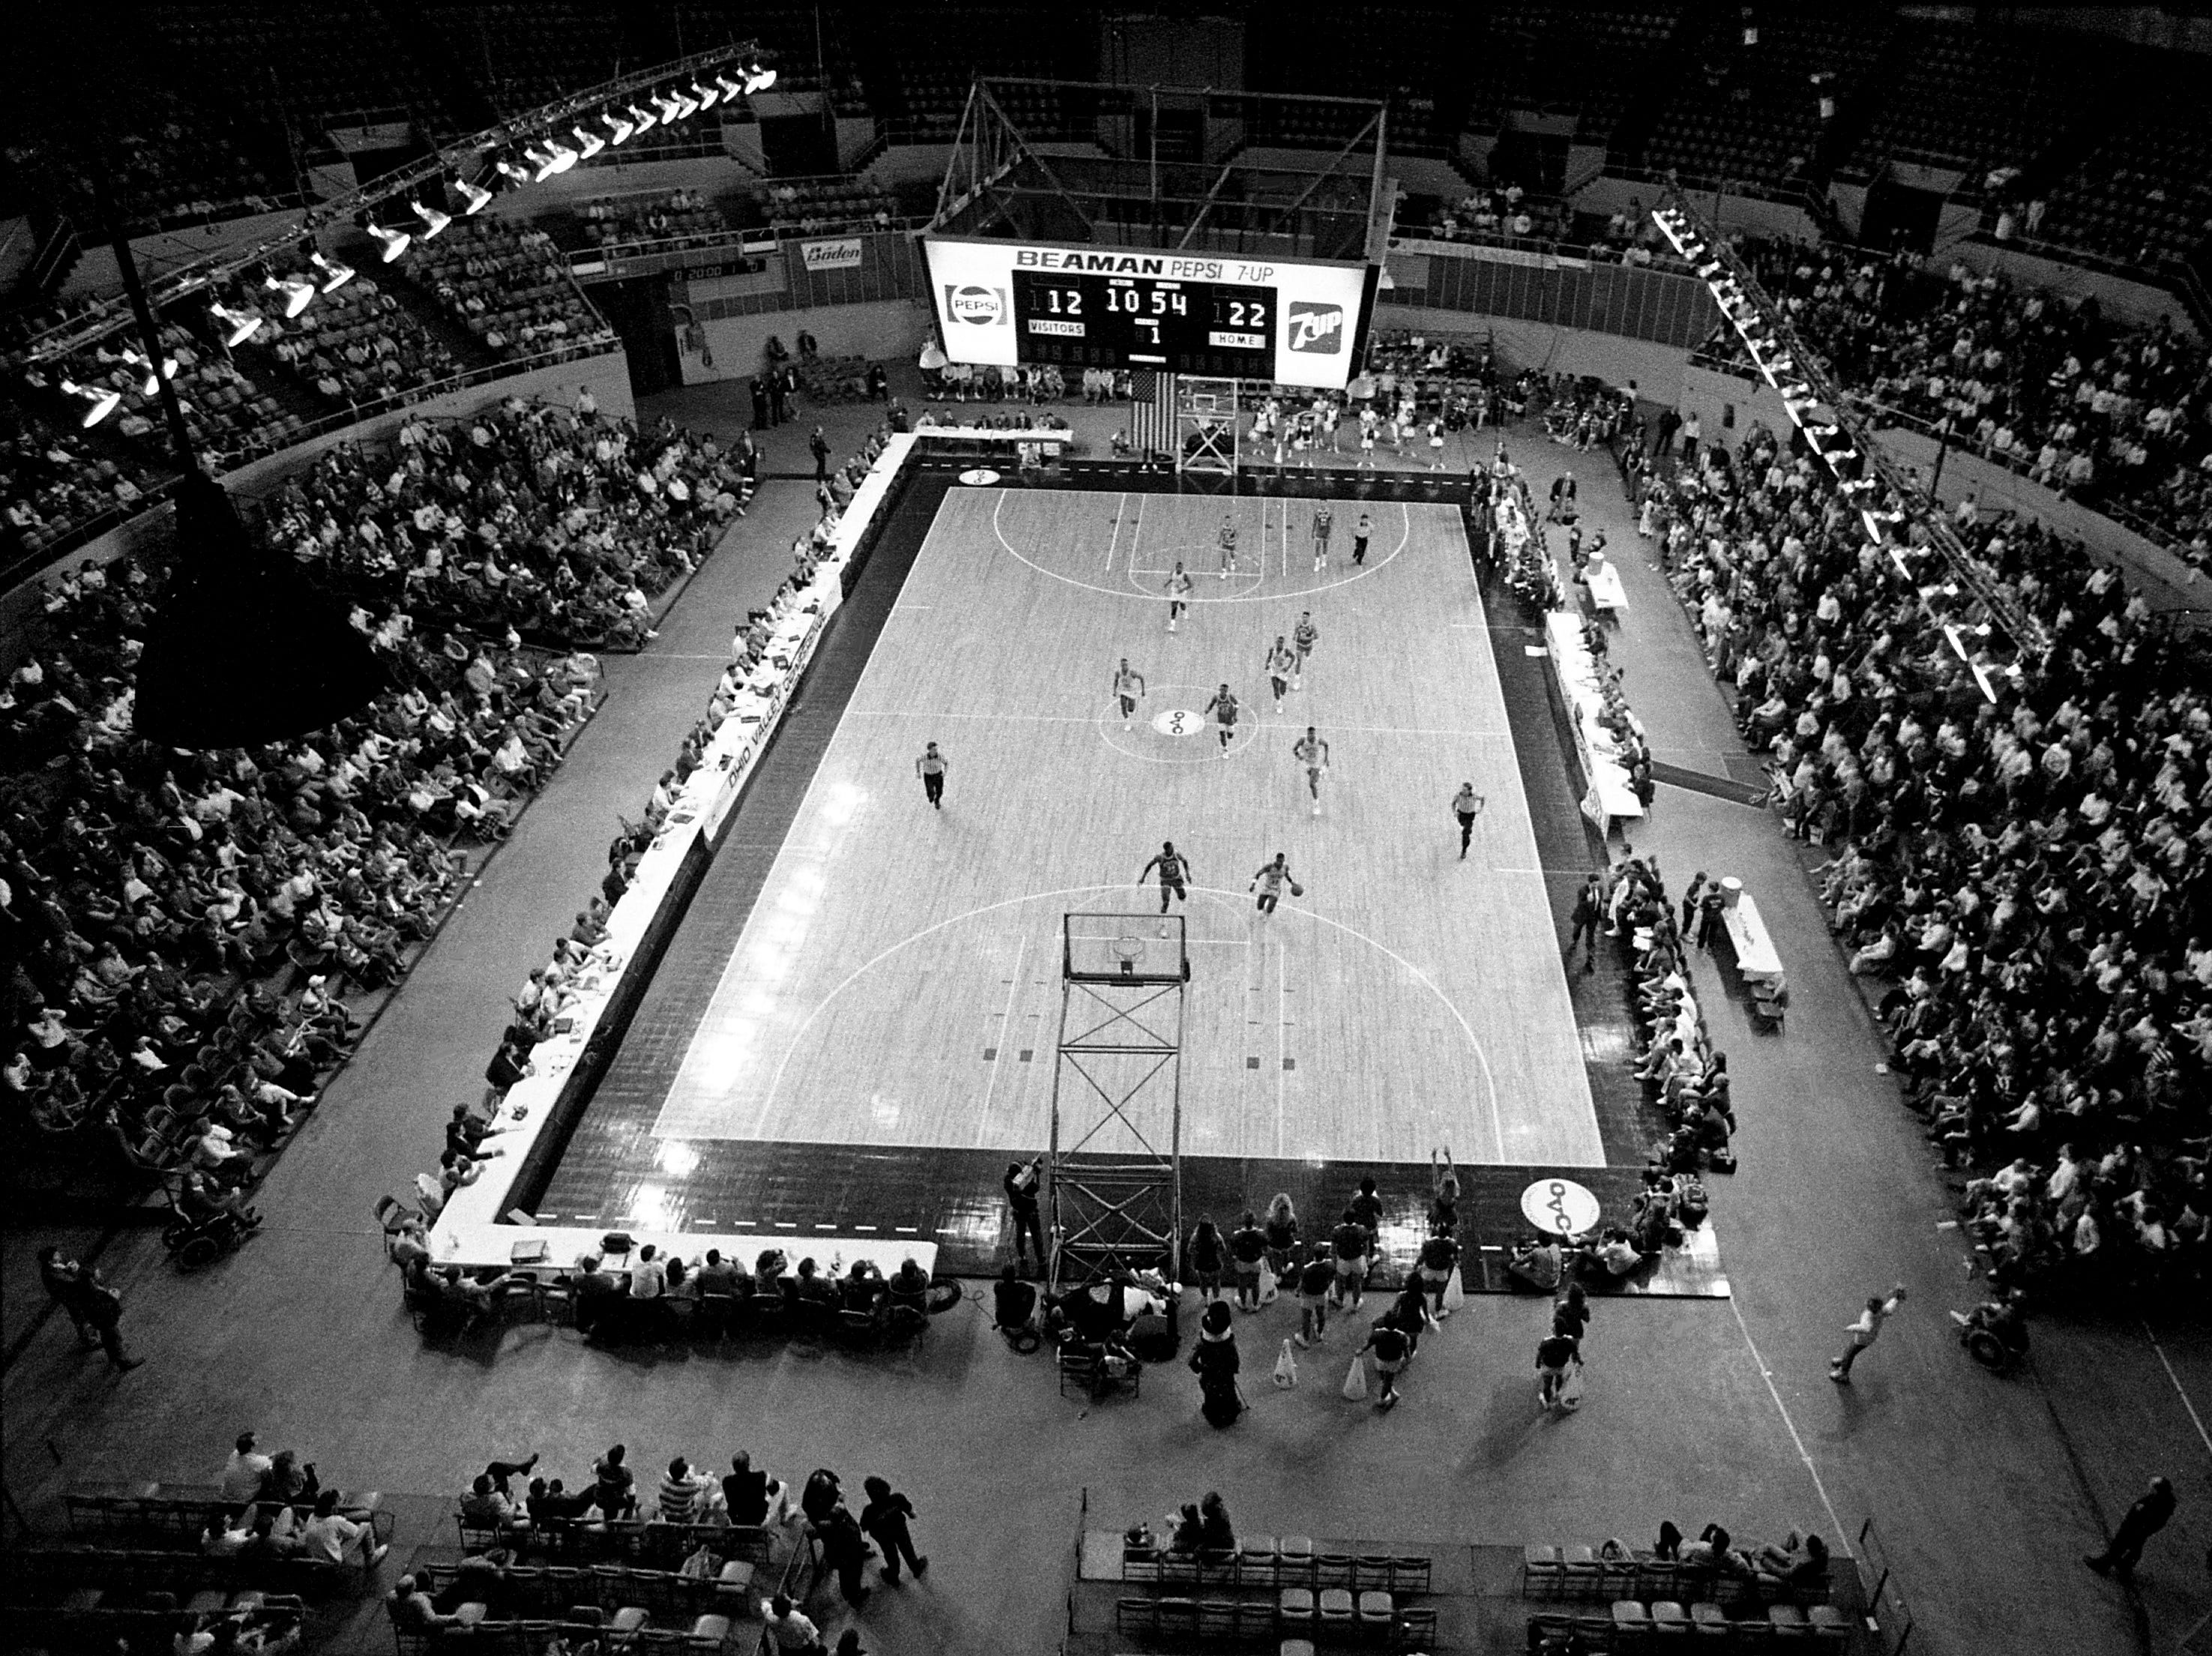 A crowd of 4,200 fans watch early action of Middle Tennessee State dramatic 82-79 come-from-behind victory over Austin Peay at Municipal Auditorium on March 9, 1989. MTSU improved their record to 22-7 and earned the league's automatic bid to the NCAA Tournament.